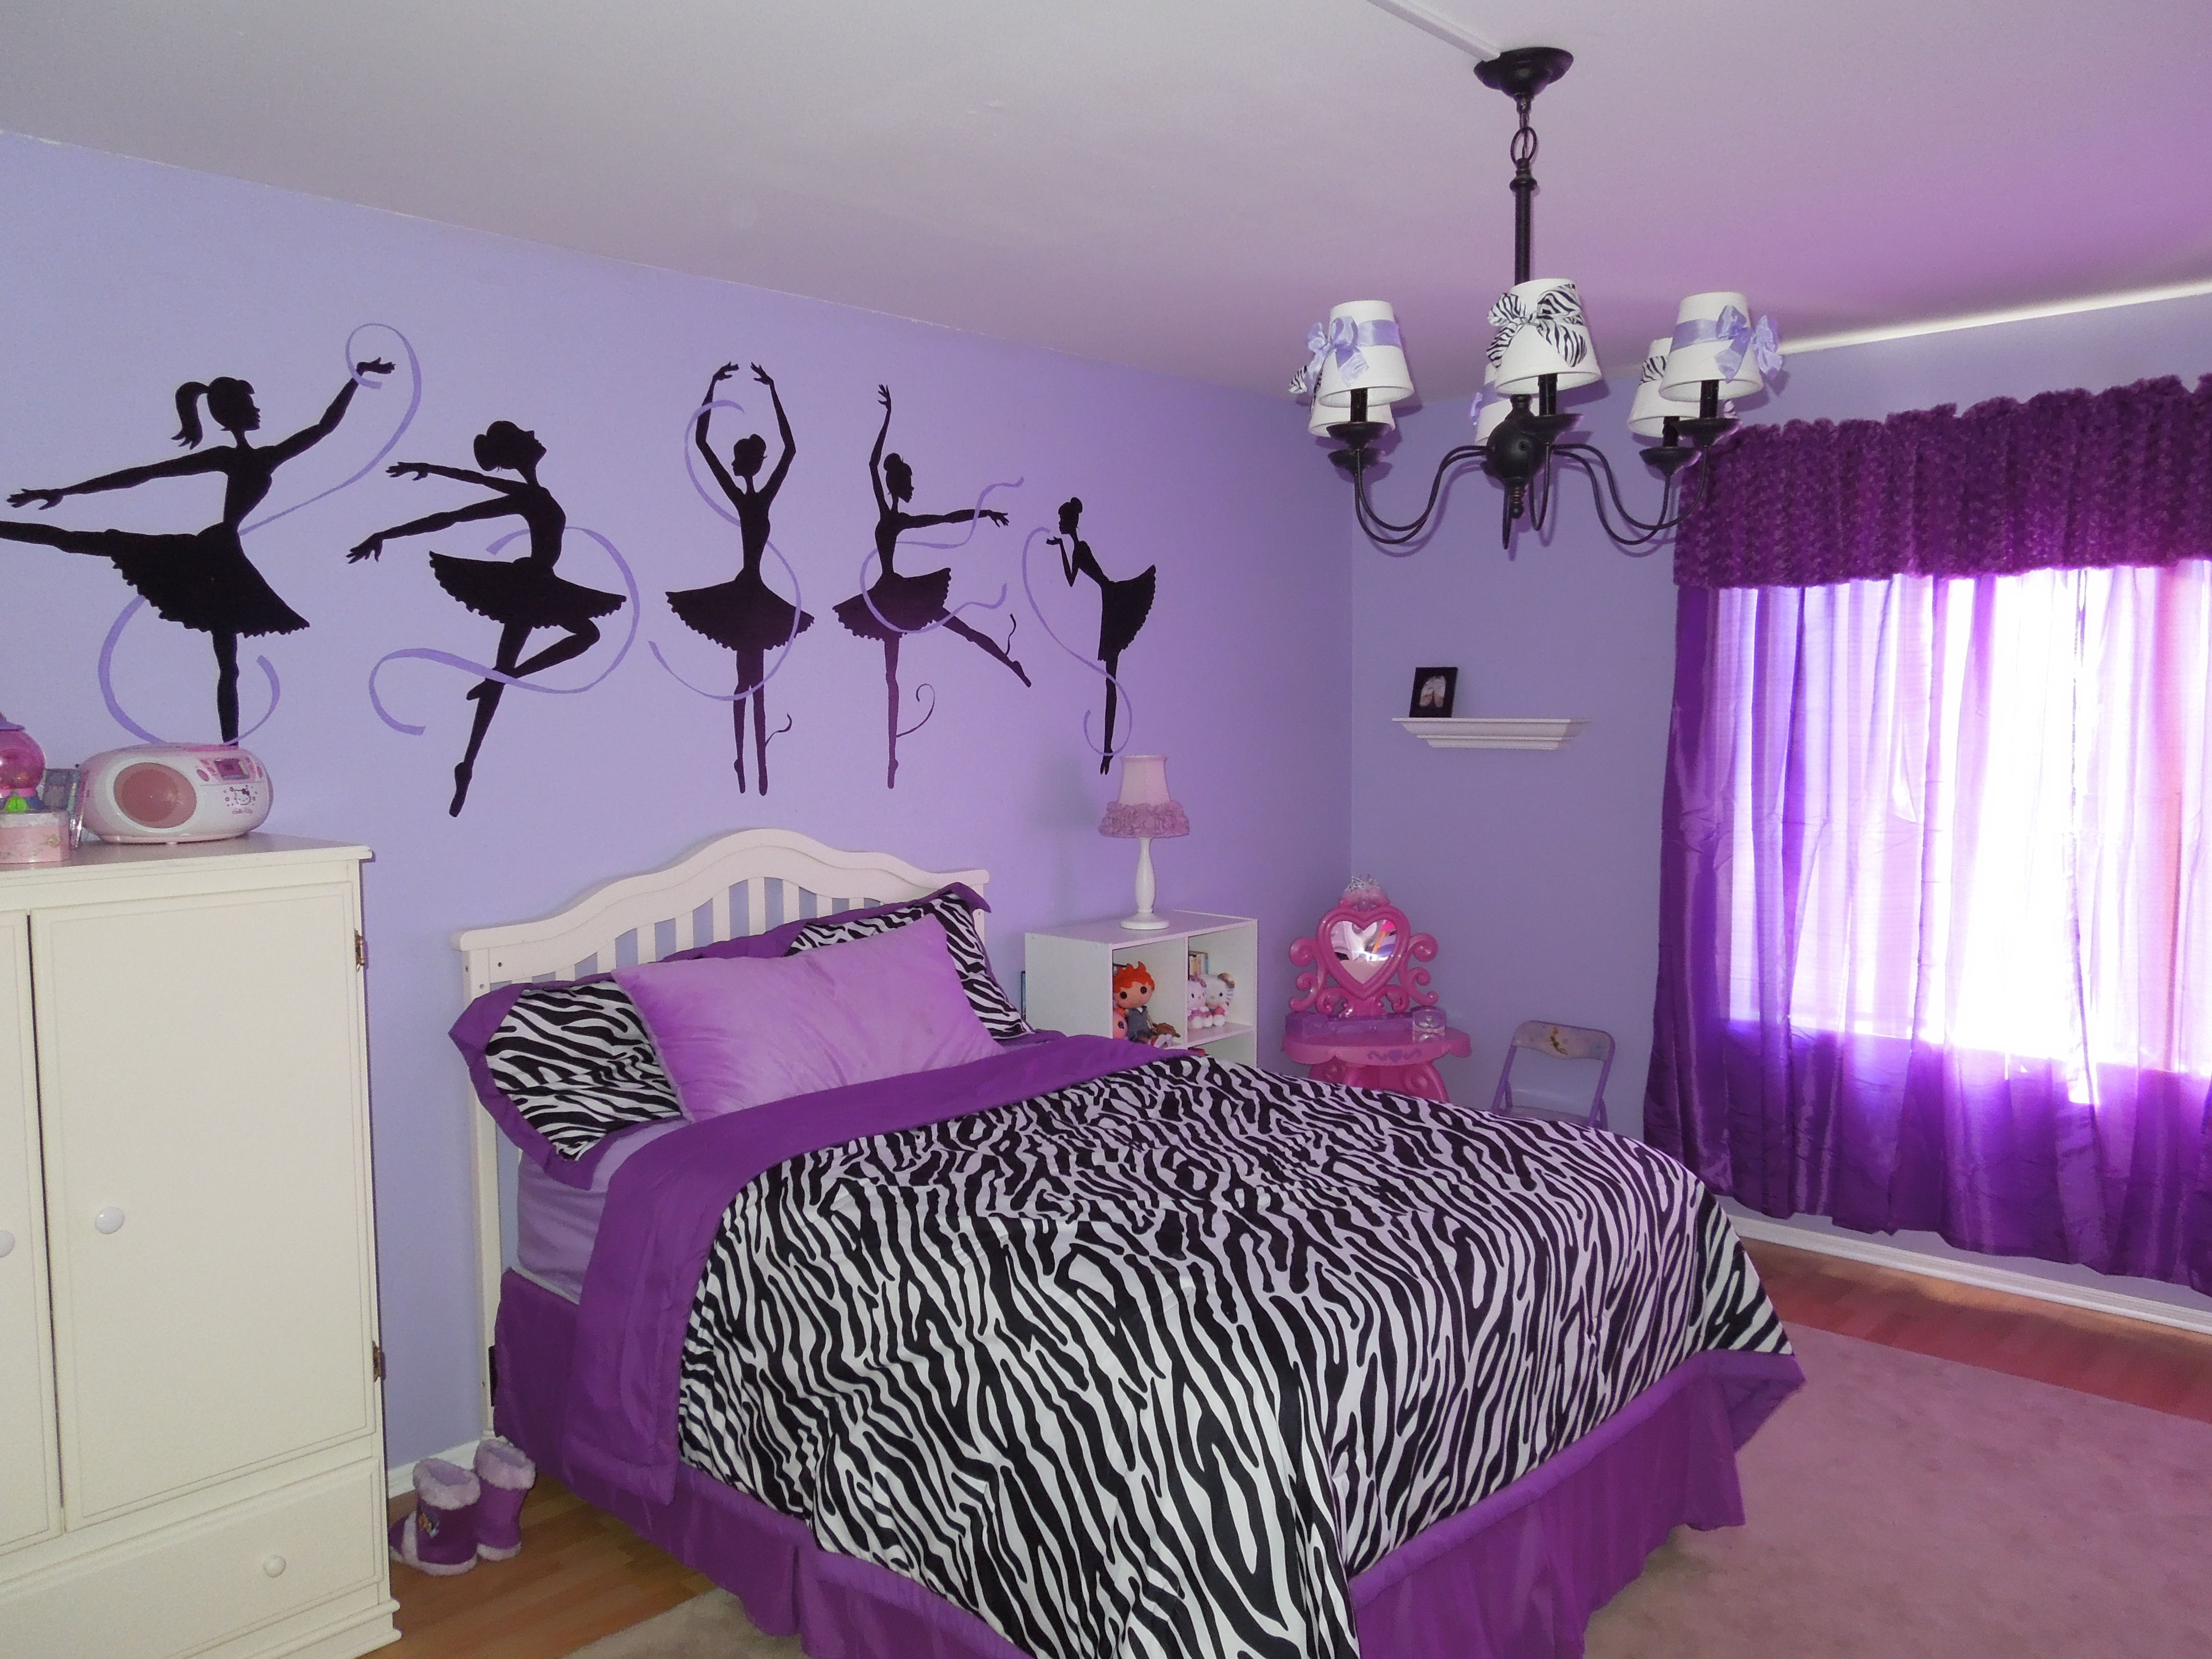 Purple And Zebra Bedroom Ideas Part - 30: Look How Pretty This Is! I Love That The Silhouettes Go So Nicely With The  · Zebra BedroomsGirls BedroomKid BedroomsBedroom IdeasZebra Girls Rooms Purple ...